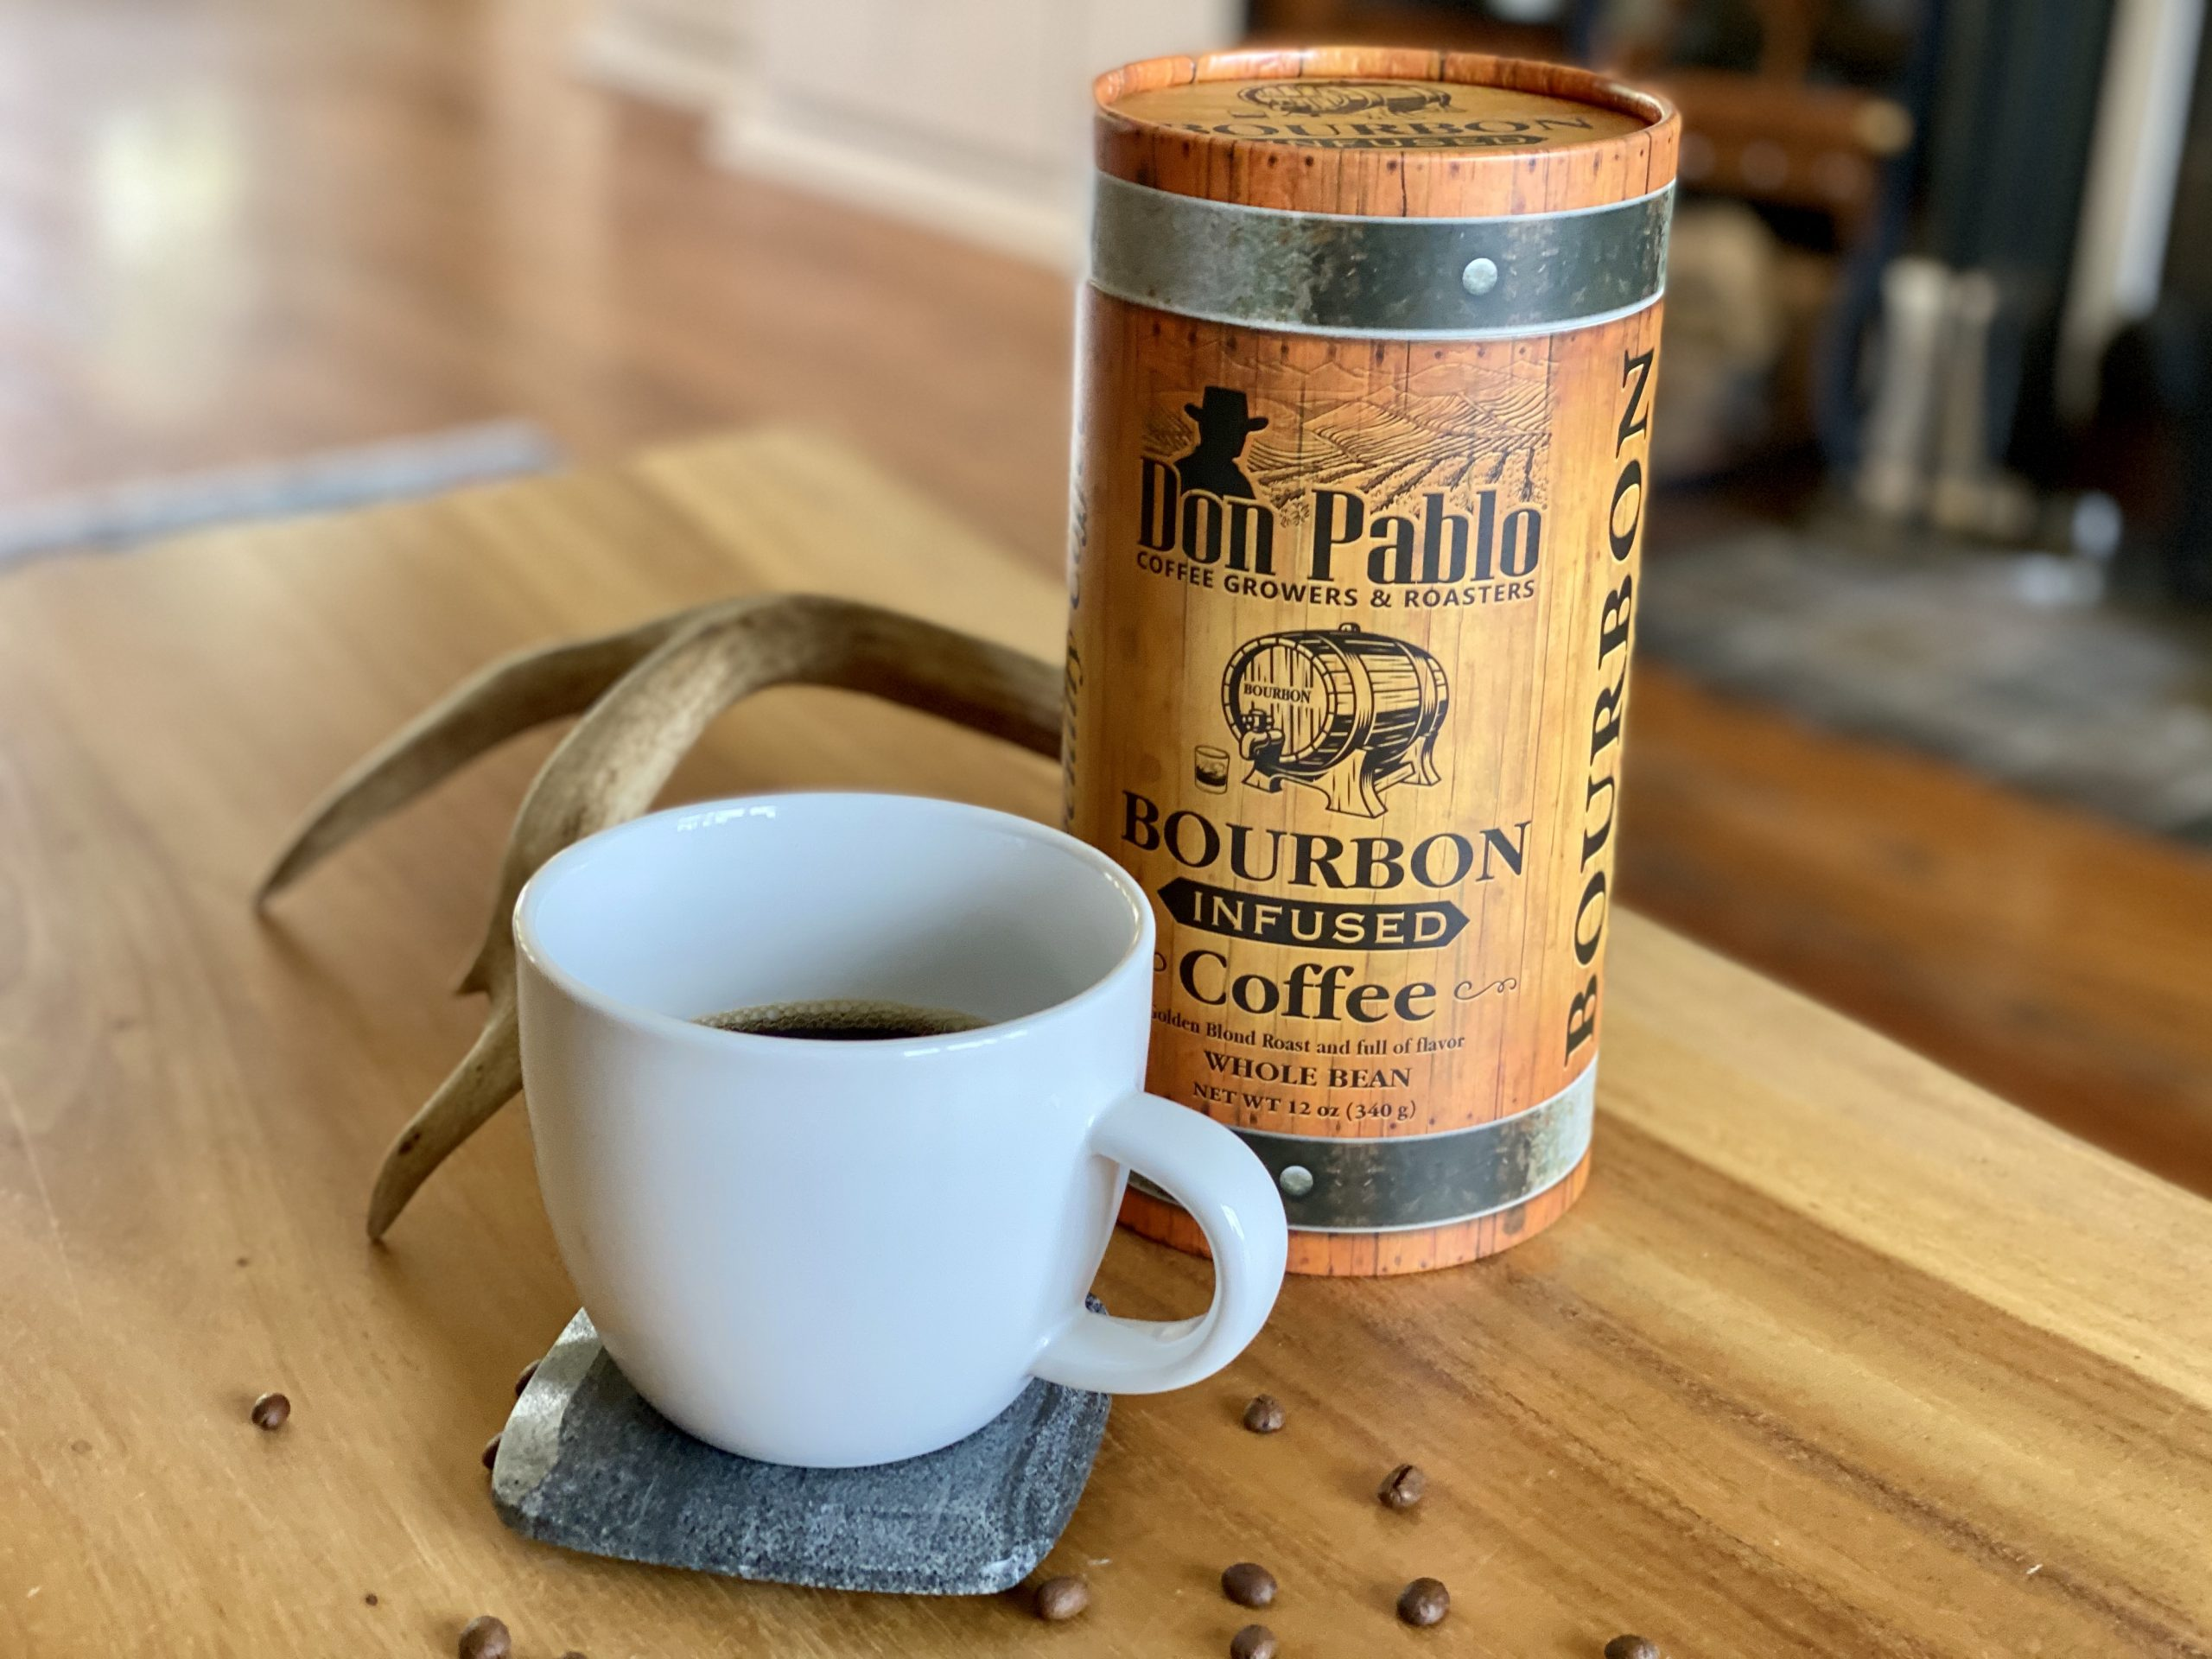 Don Pablo Bourbon Infused Coffee beans with cup of brewed coffee